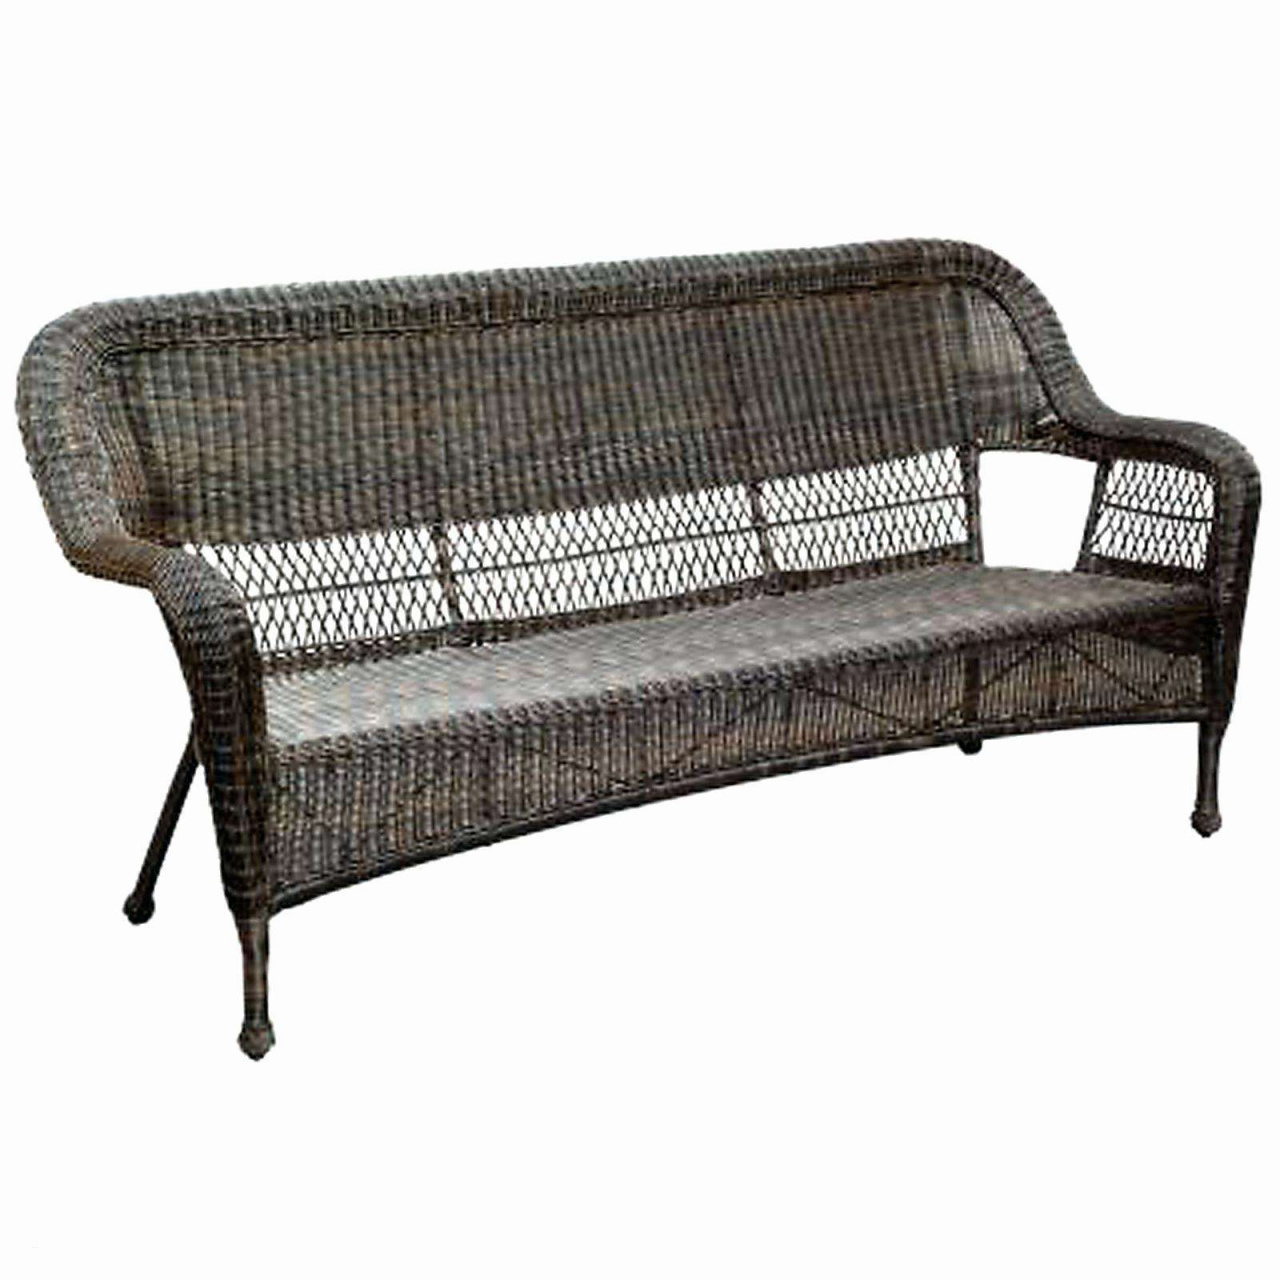 patio daybed 30 schon daybed garten durch patio daybed